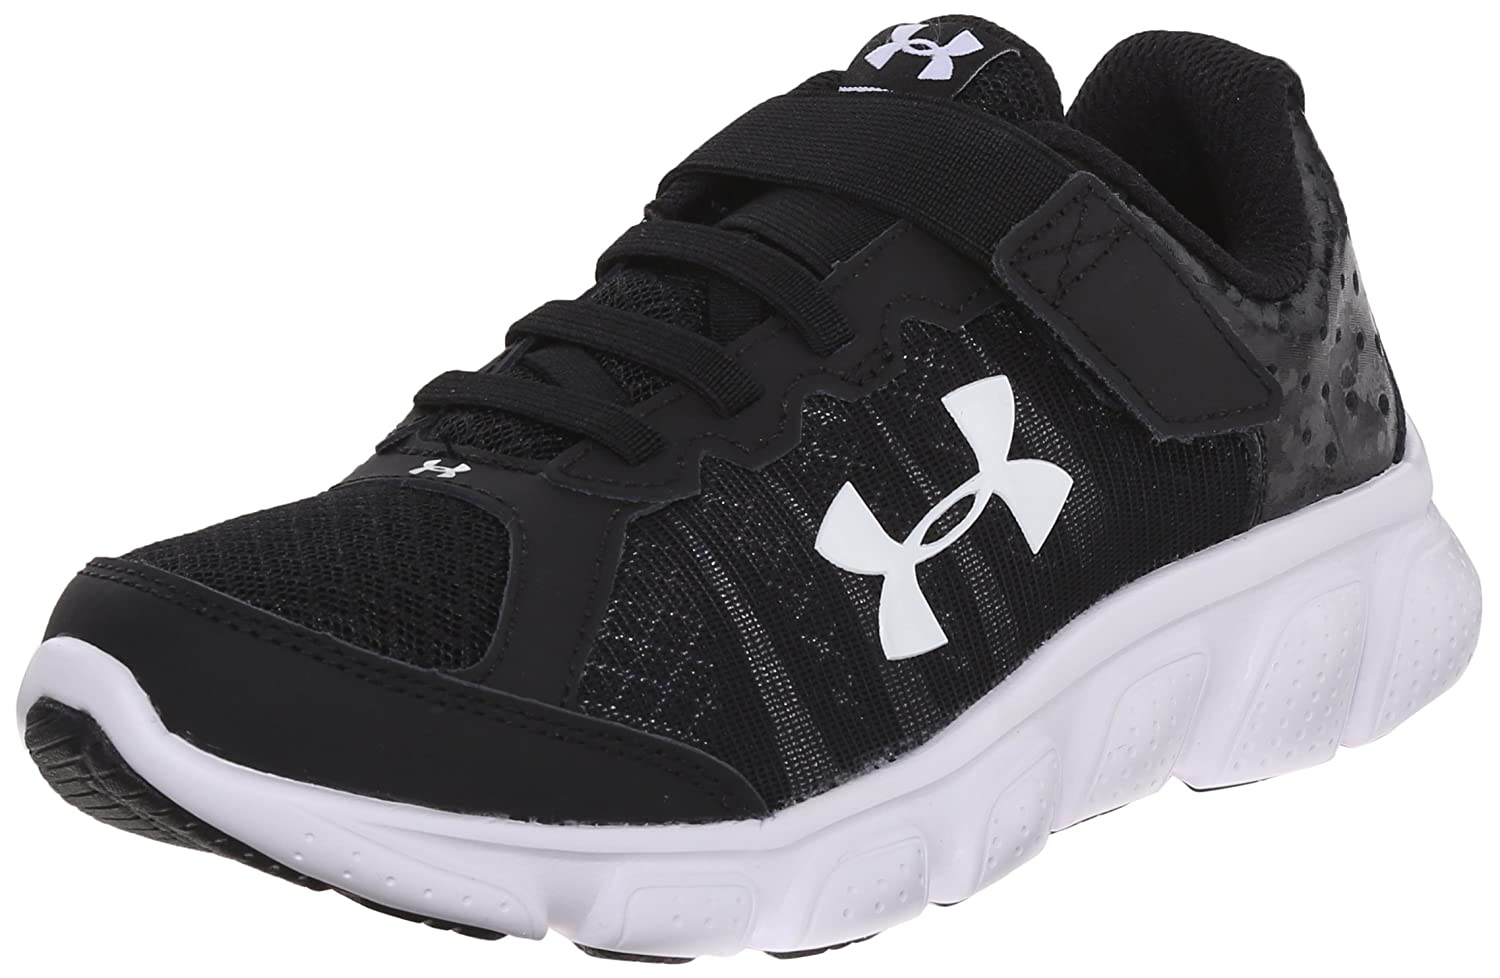 7283acd7a7 Under Armour Boys Boys  Assert 6 AC Running Shoes Running Shoe  Amazon.ca   Shoes   Handbags